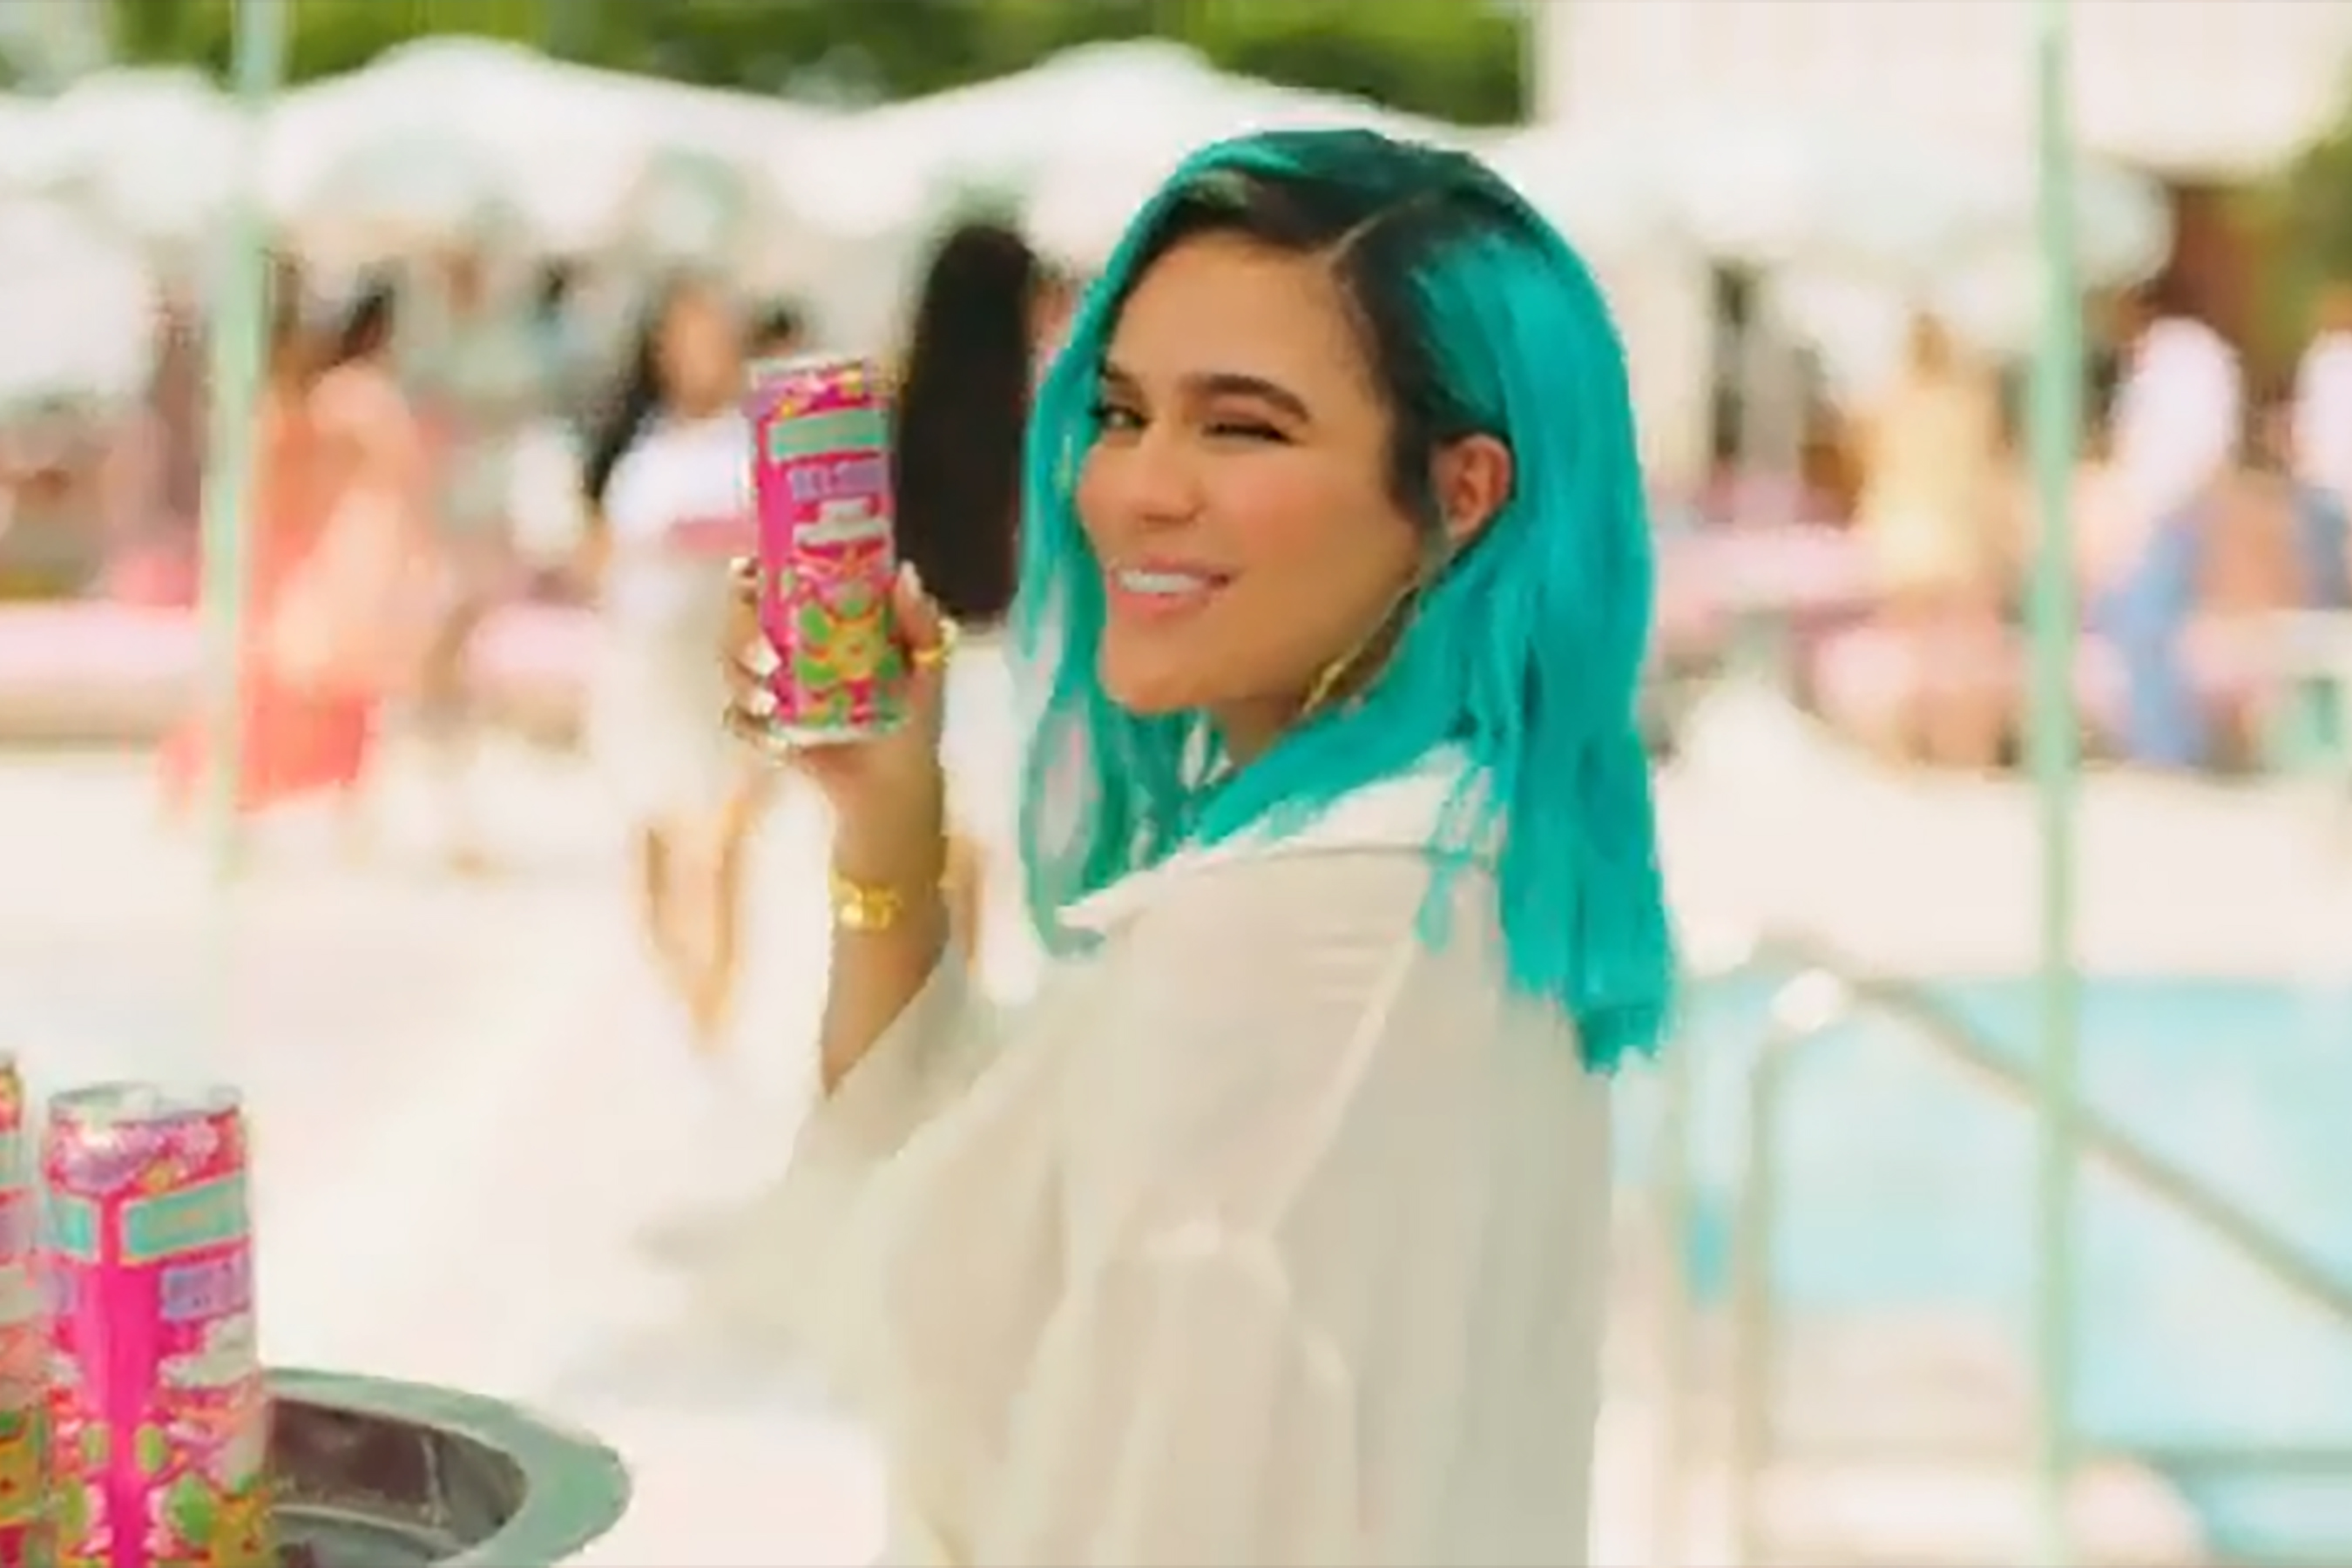 The World Is Ready To Drink Louder! Smirnoff Announces Its Newest Partnership With International Superstar Karol G